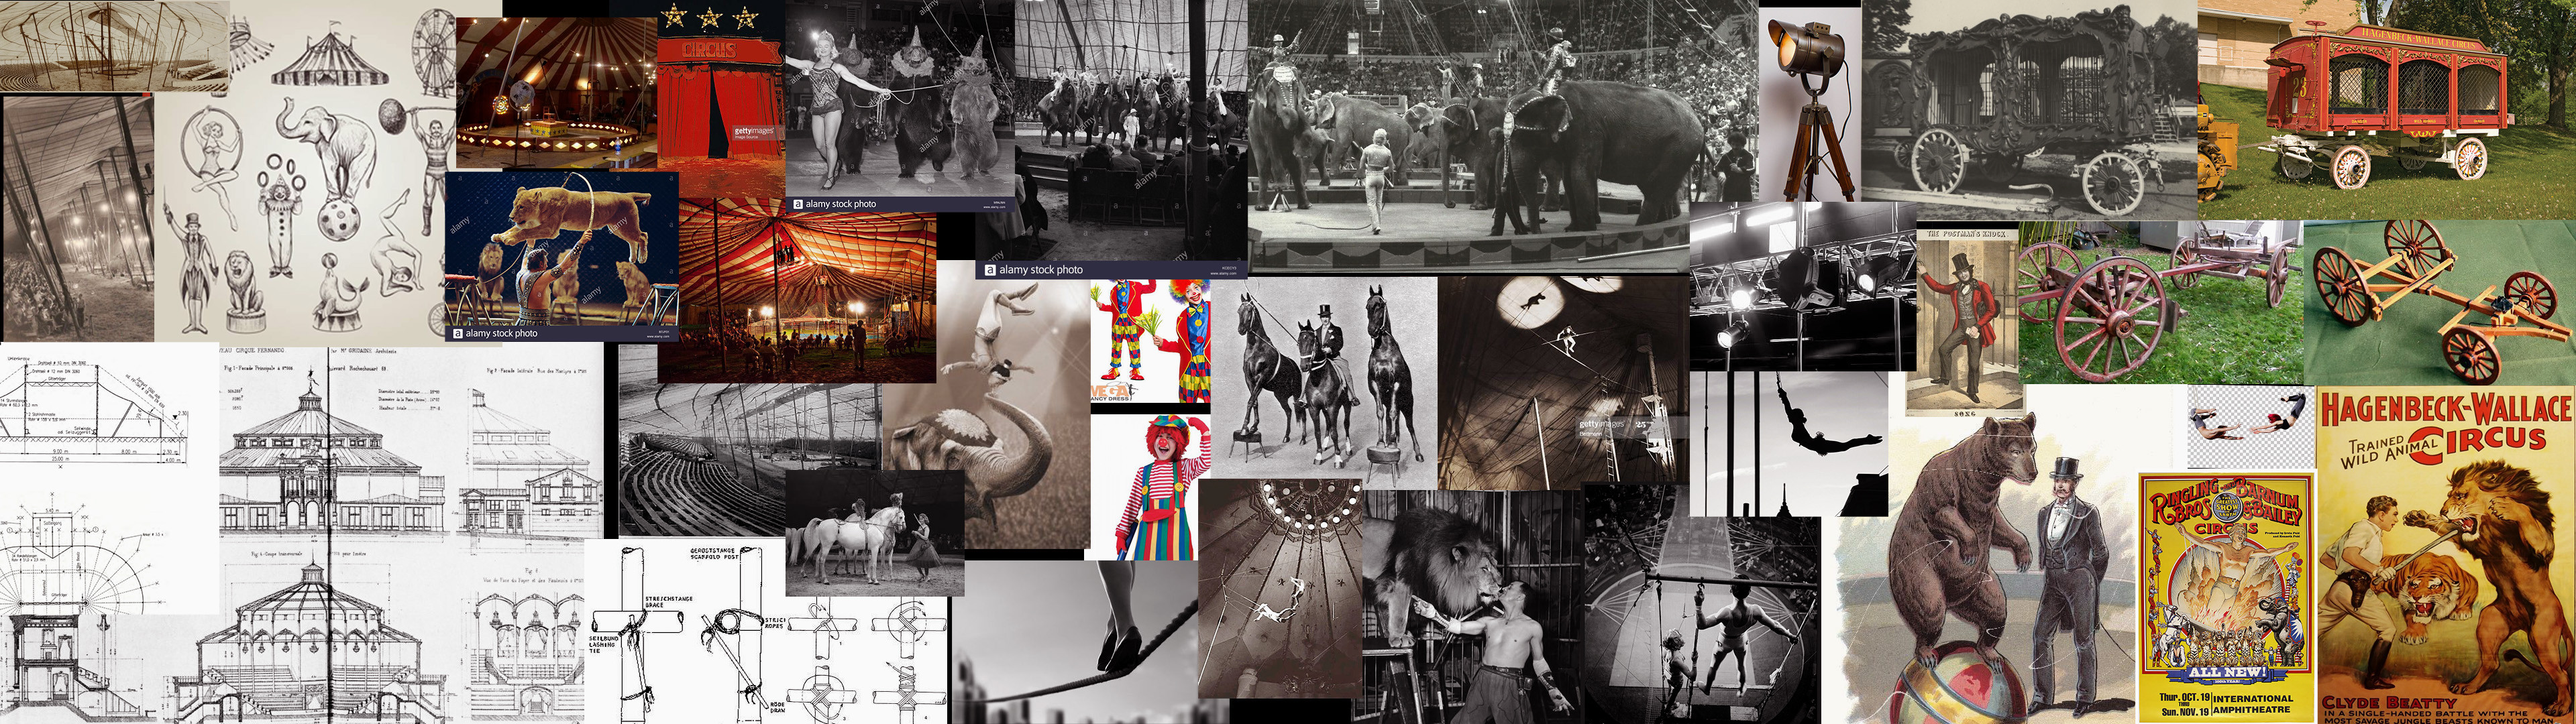 To reconstruct the circus scene in the Cin Ali book for the Cin Ali museum,  I collected some references. From  architecture to costumes, seats to circus wagon, it was very fun to research 🤓